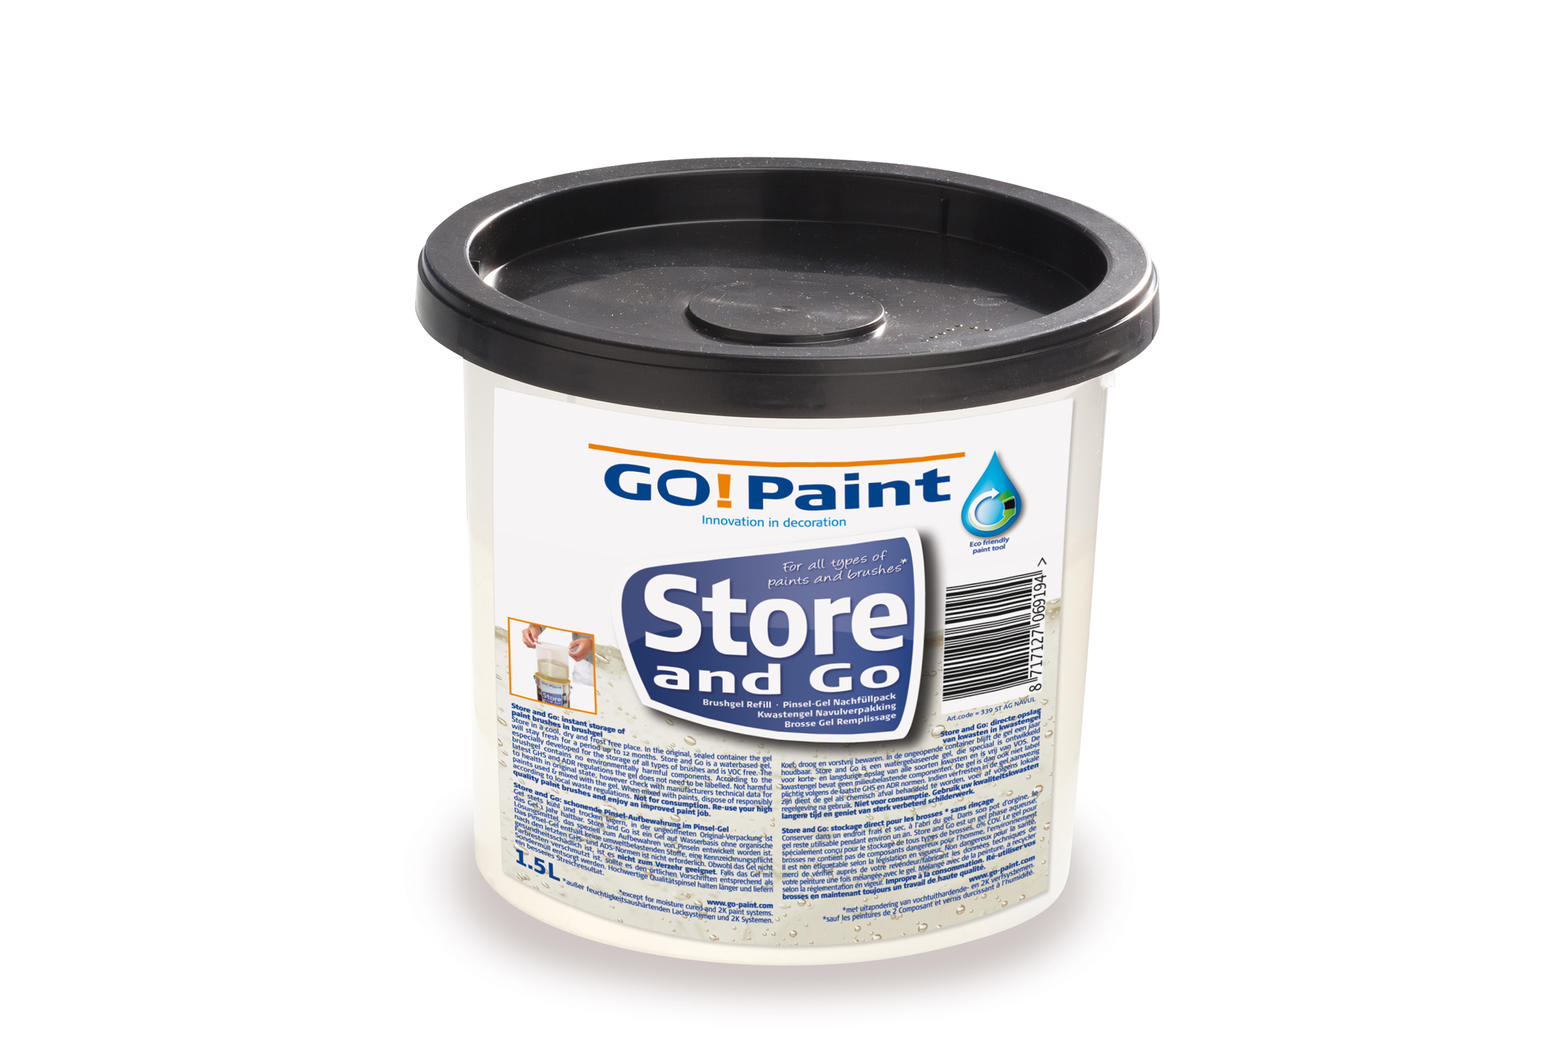 Go Paint Store And Go Gel Navulling 1.5 Liter